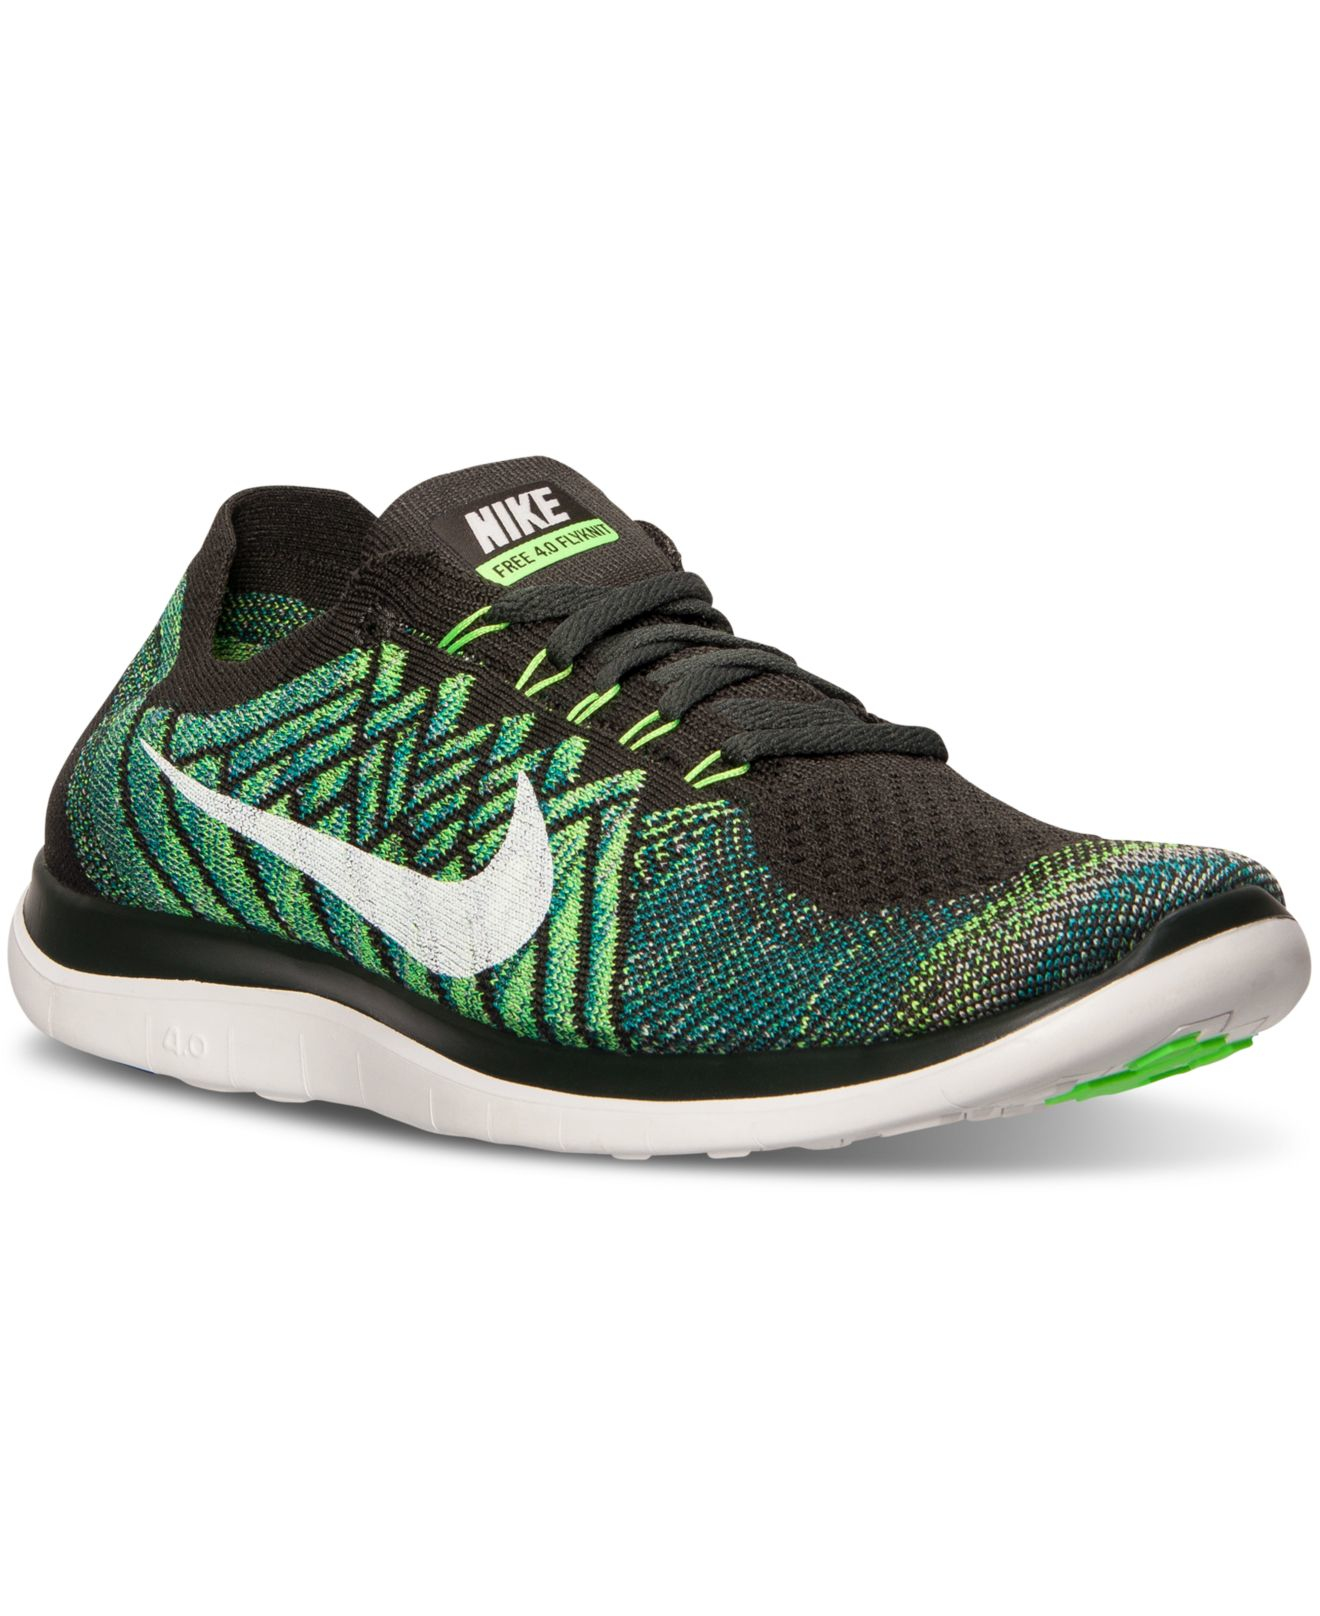 98312e7350b4 ... sale gallery. previously sold at macys mens nike flyknit 2f7b0 621de